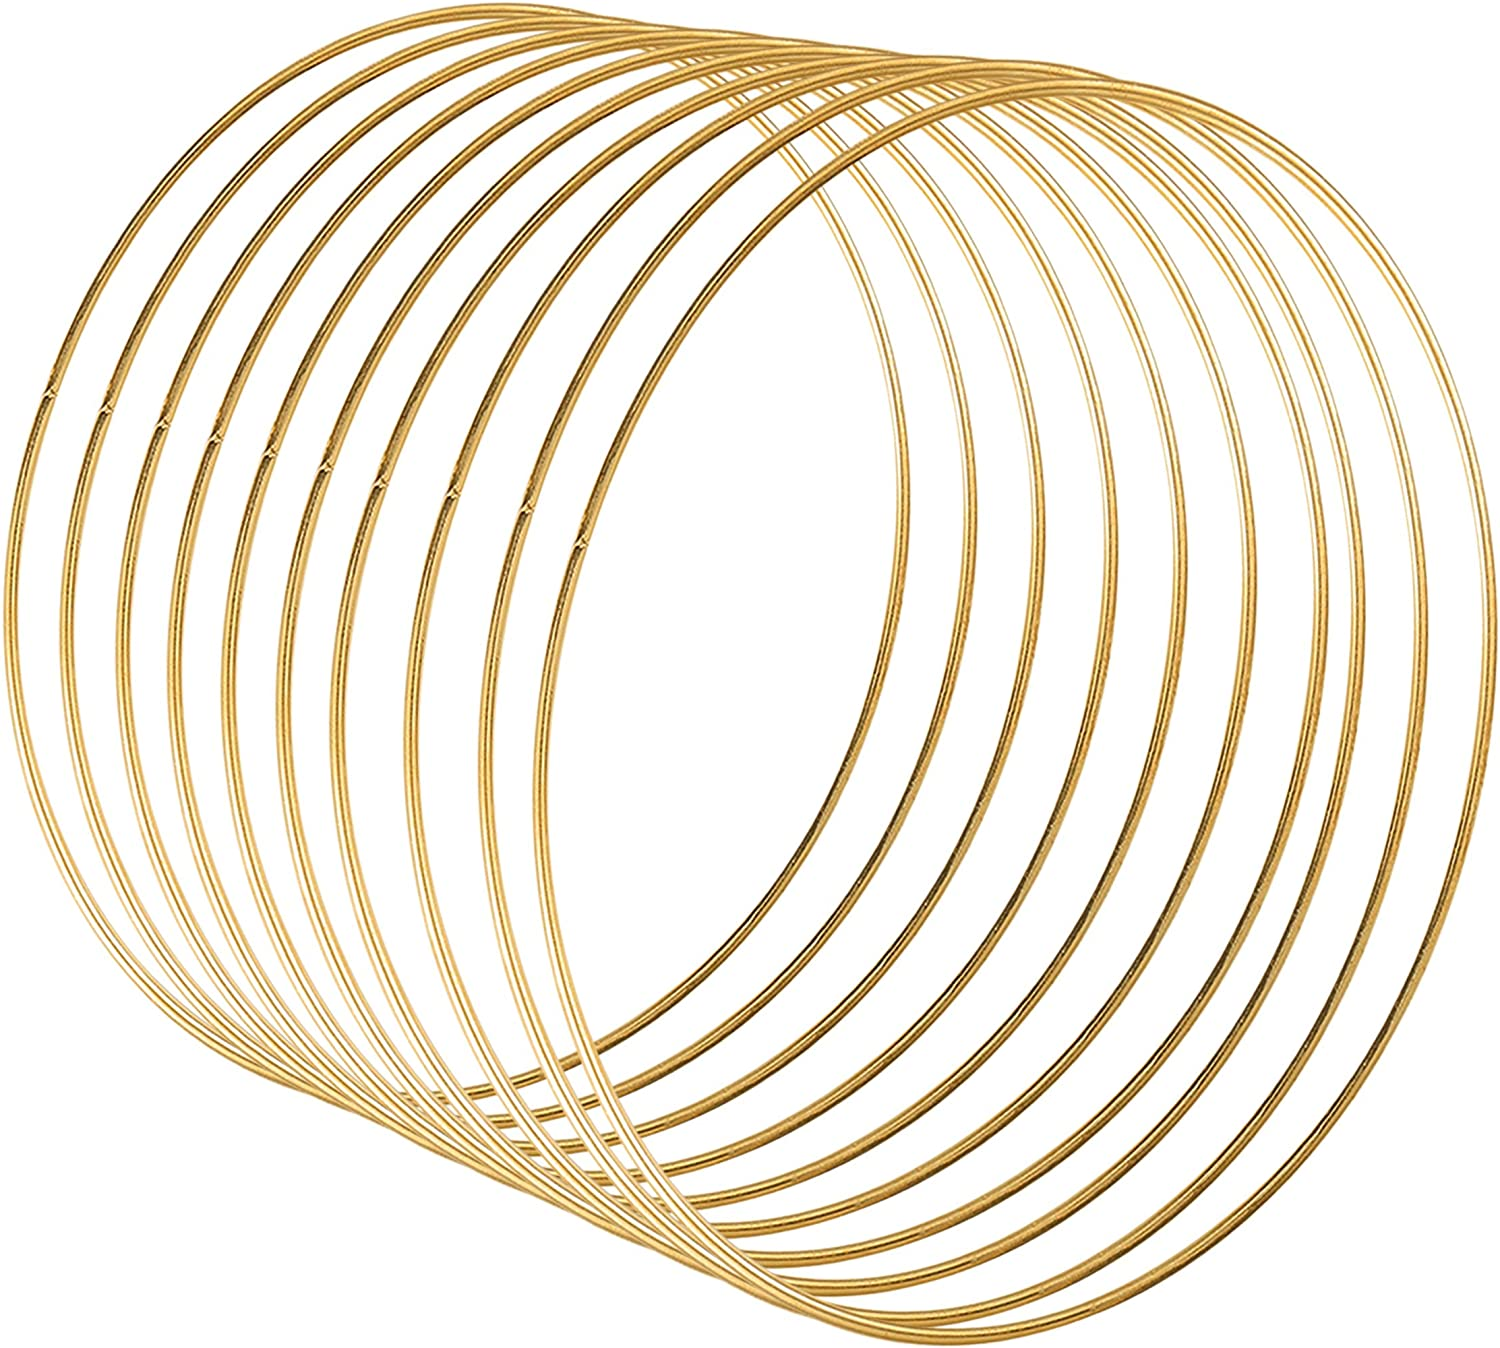 Sntieecr 10 Pack 12 Inch Large Metal Floral Hoop Wreath Macrame Gold Hoop Rings for Making Wedding Wreath Decor and DIY Dream Catcher Wall Hanging Crafts (10)